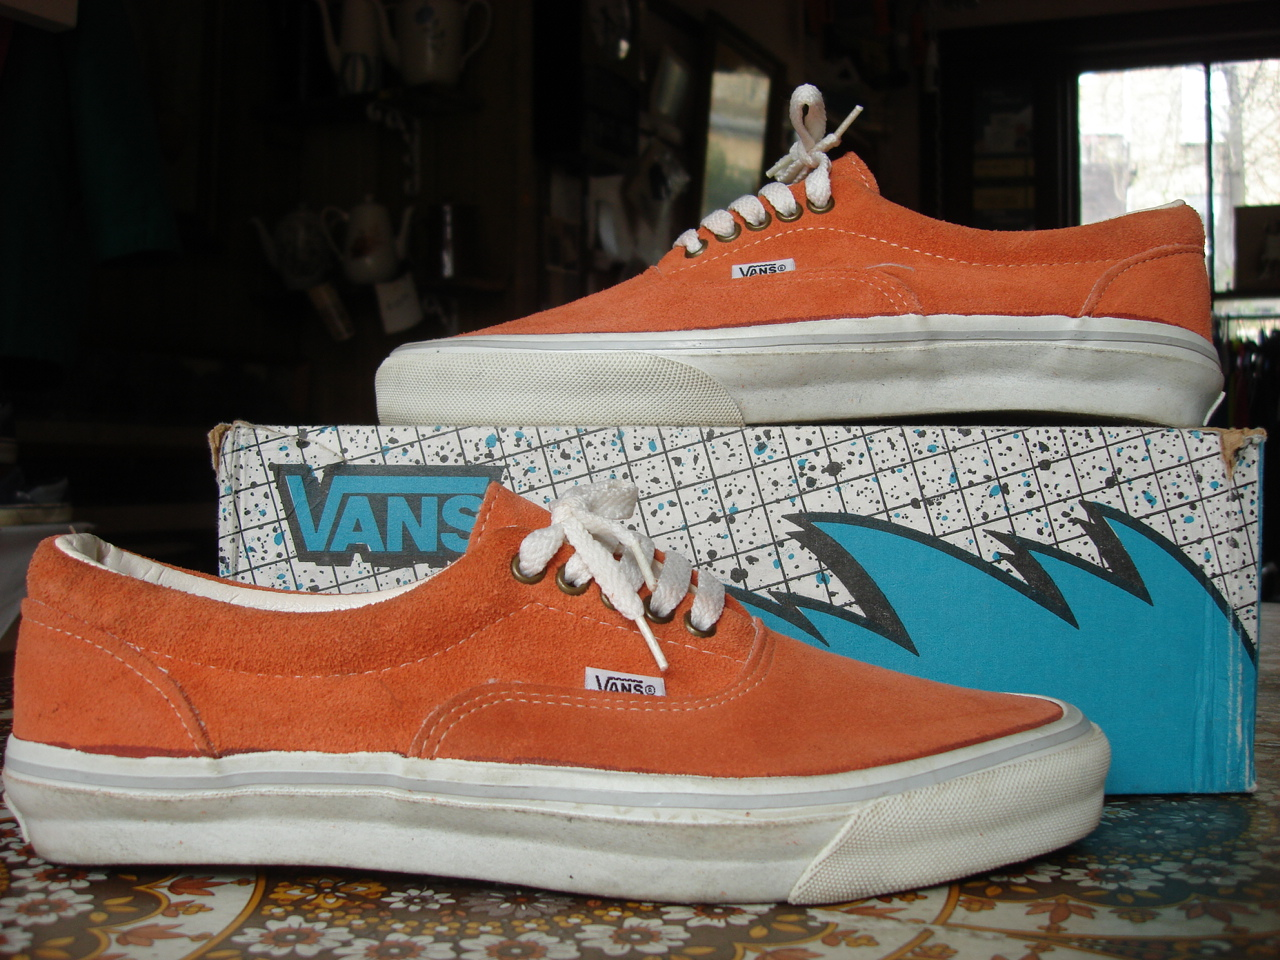 MADE IN USA 1990s new in box orange US11.5 crescent isalnd collection